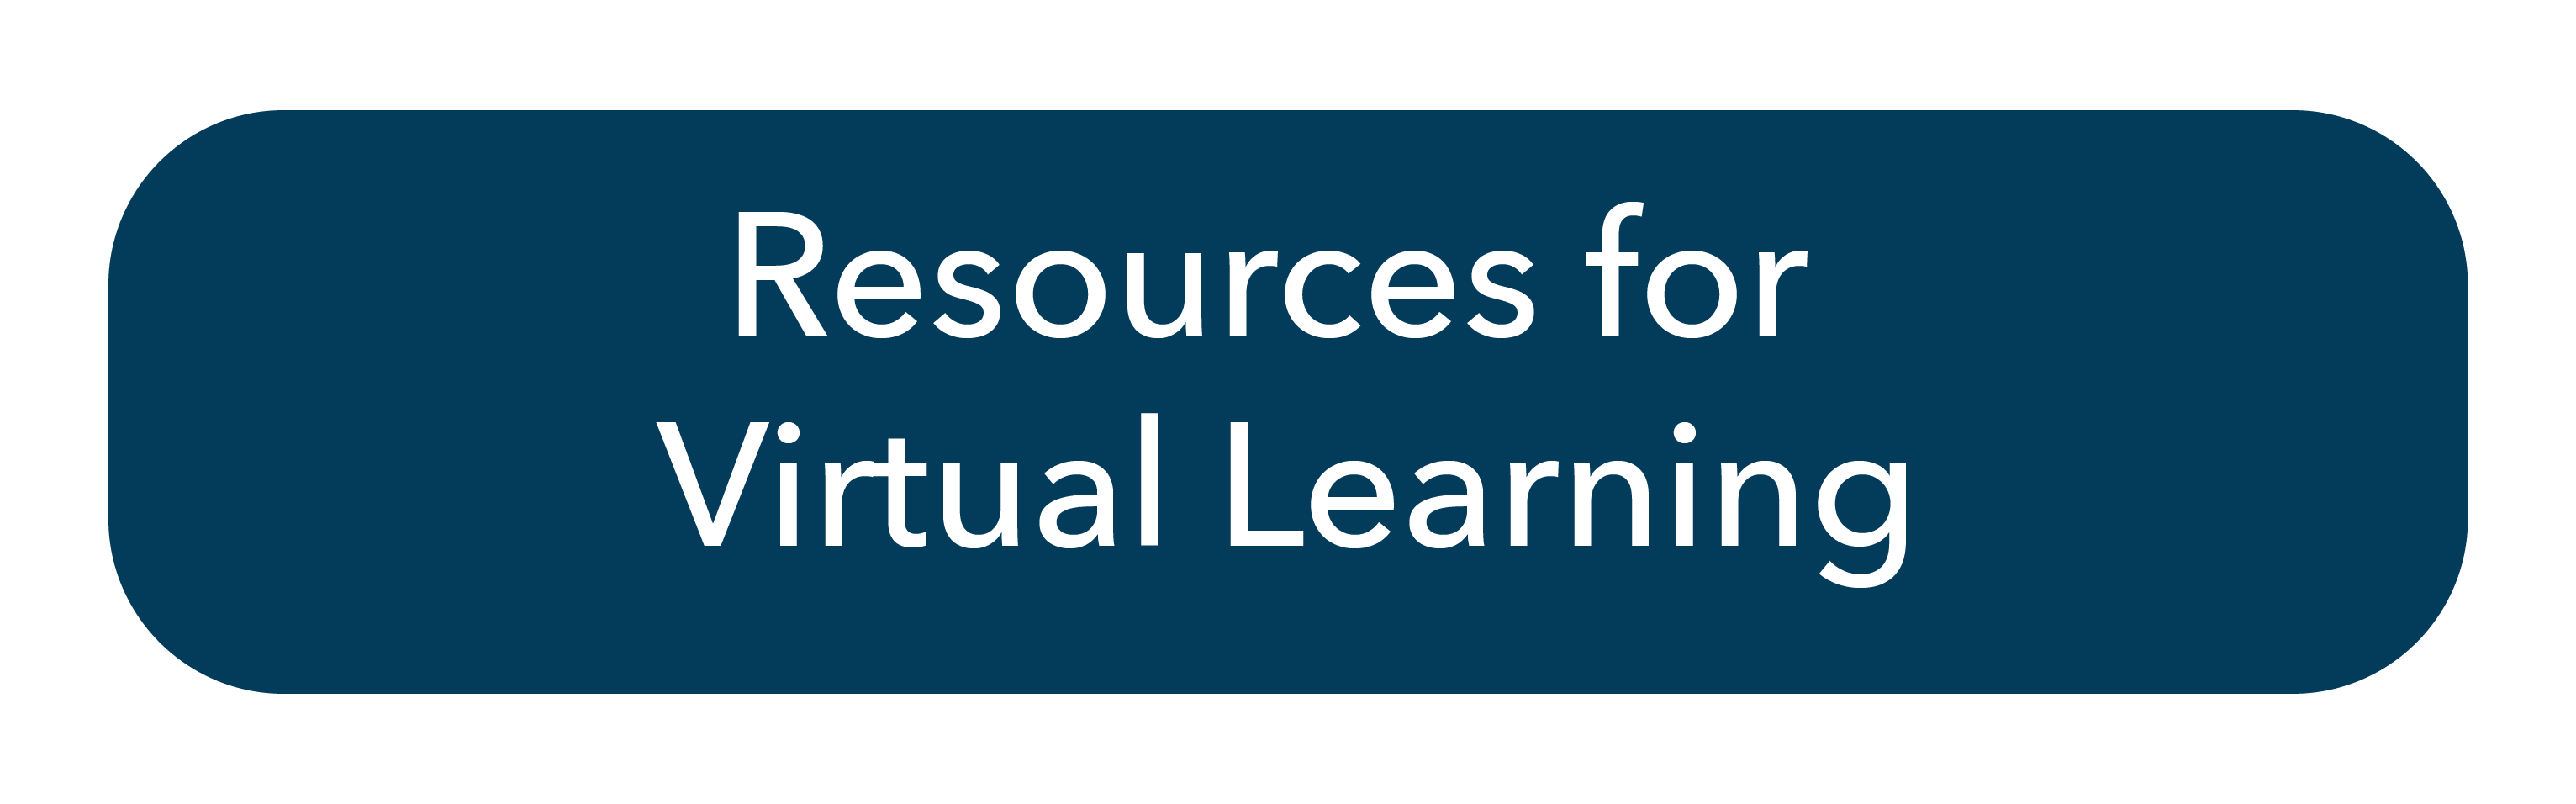 Resources for Virtual Learning